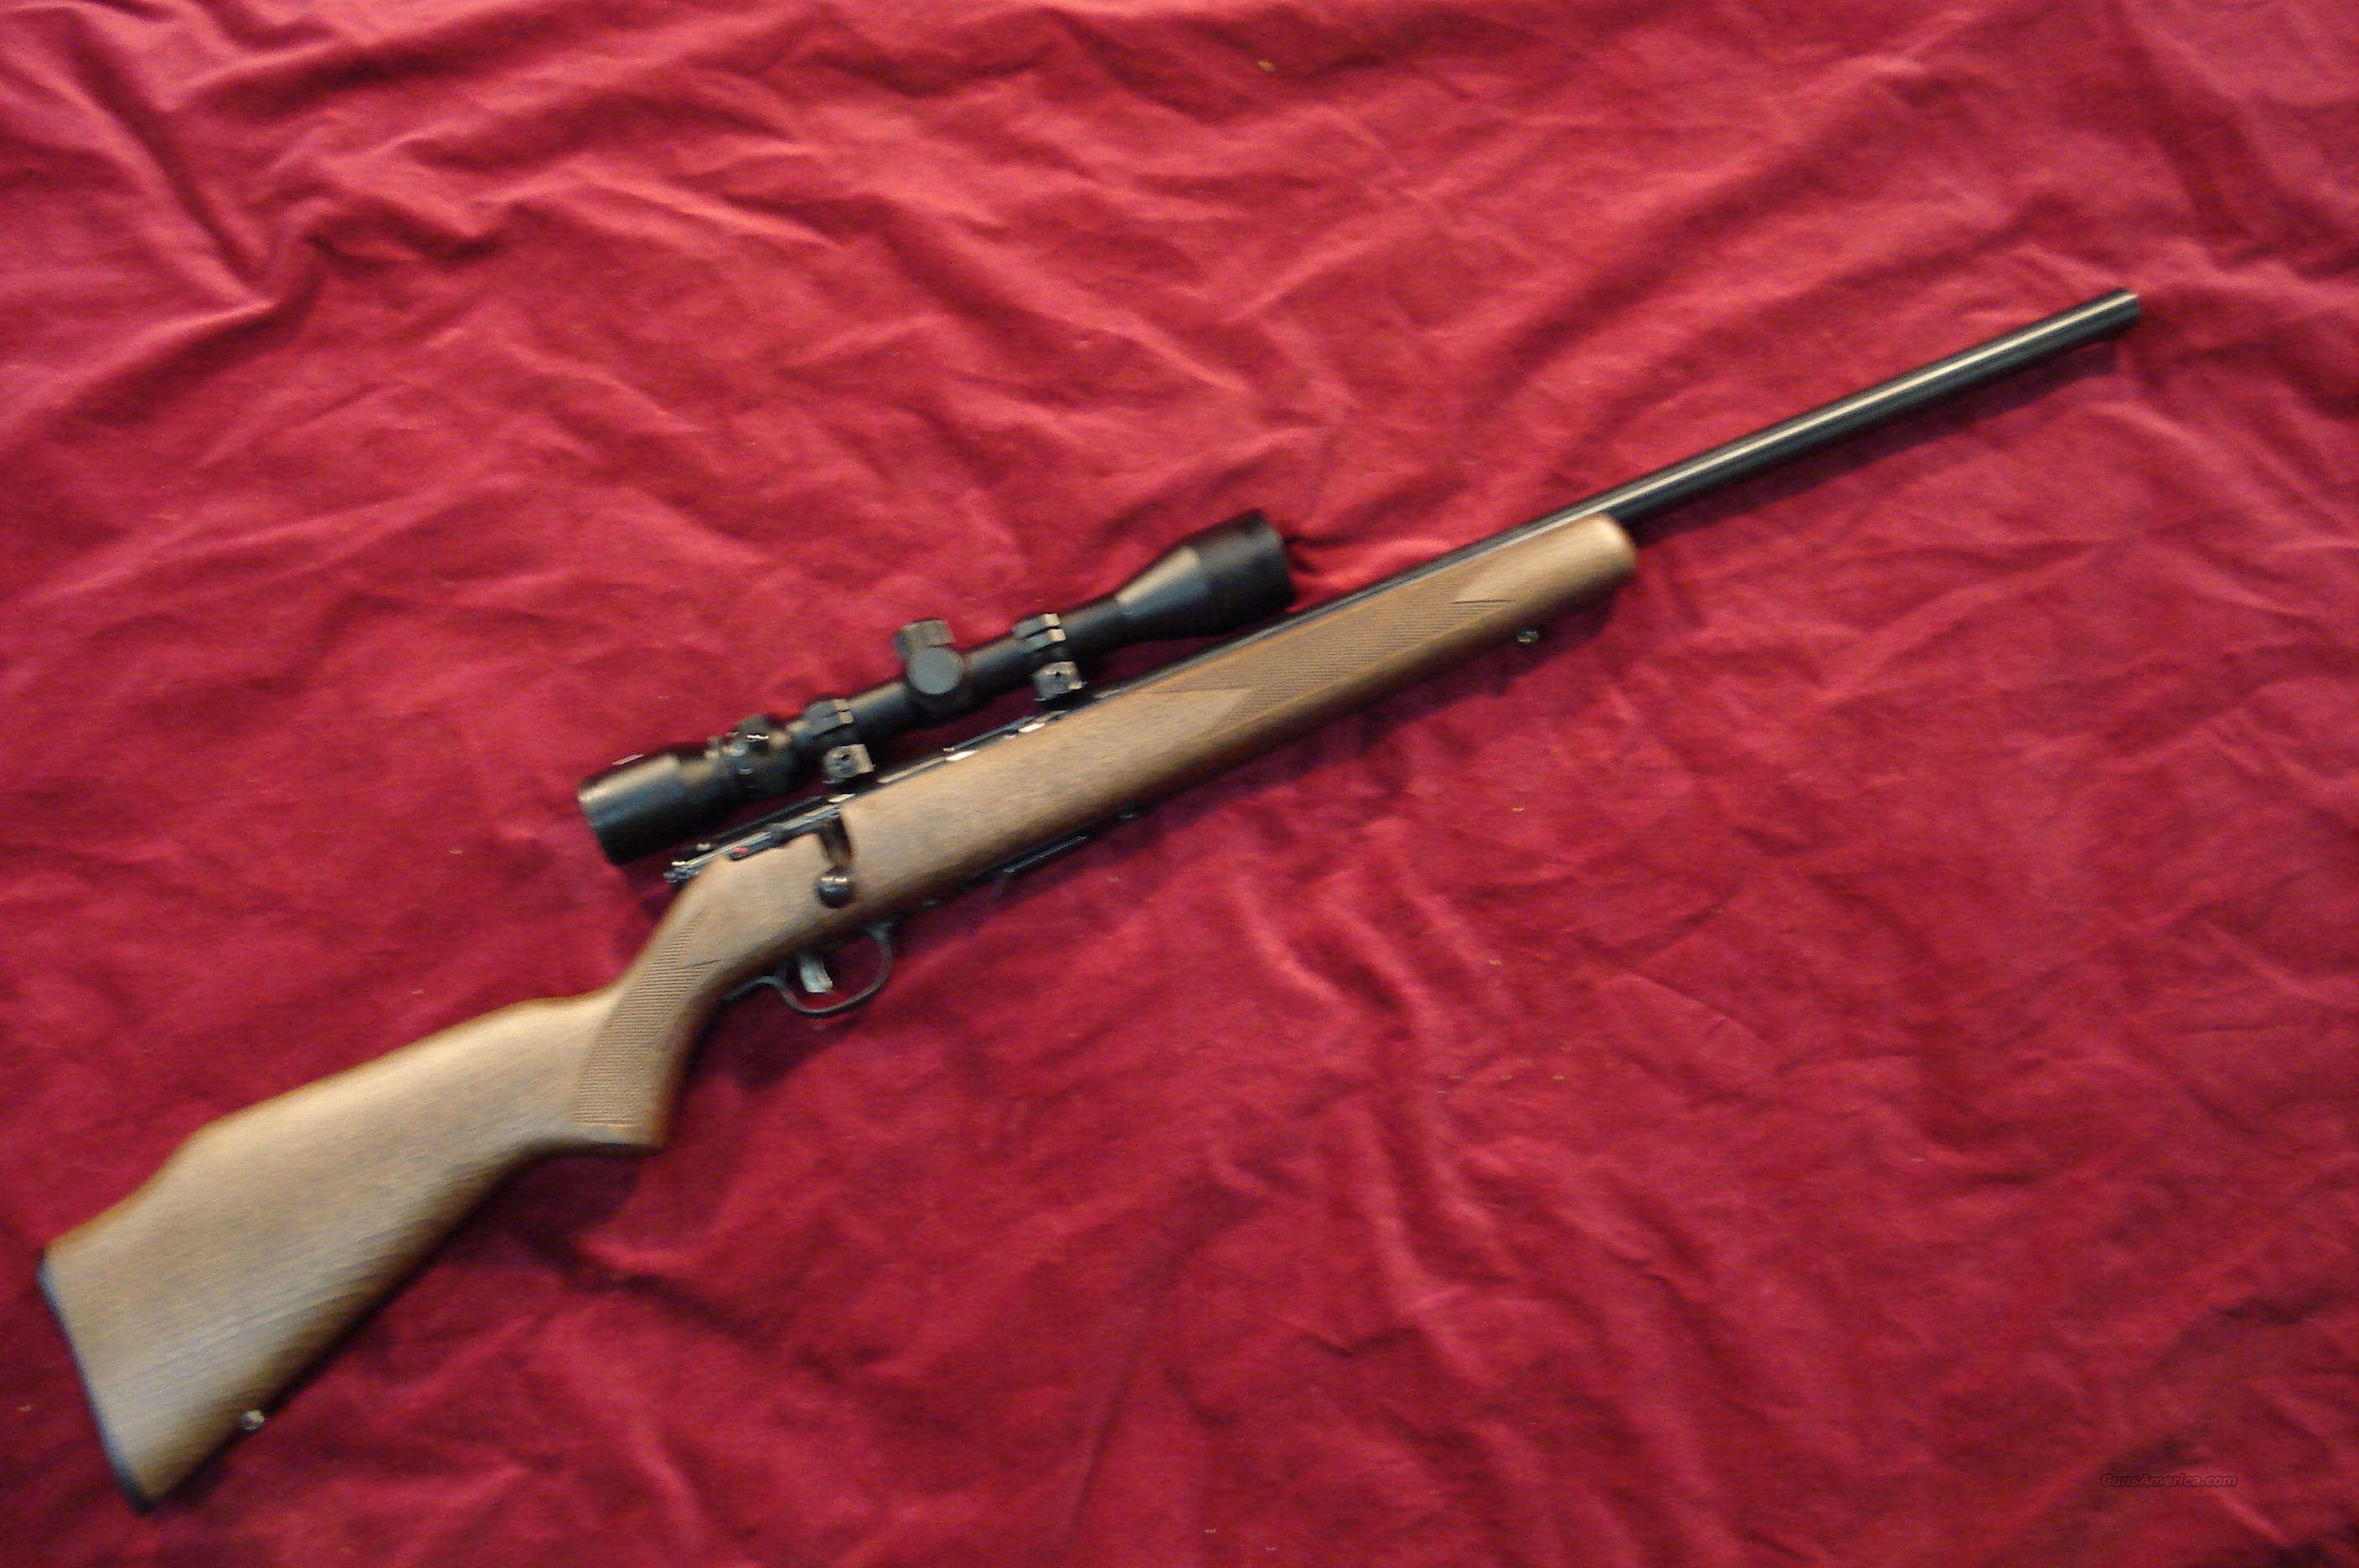 SAVAGE 17HMR ACCUTRIGGER HEAVEY BARREL WOOD STOCK SCOPE PACKAGE NEW (93R17GVXP)  (96222)  Guns > Rifles > Savage Rifles > Accutrigger Models > Sporting